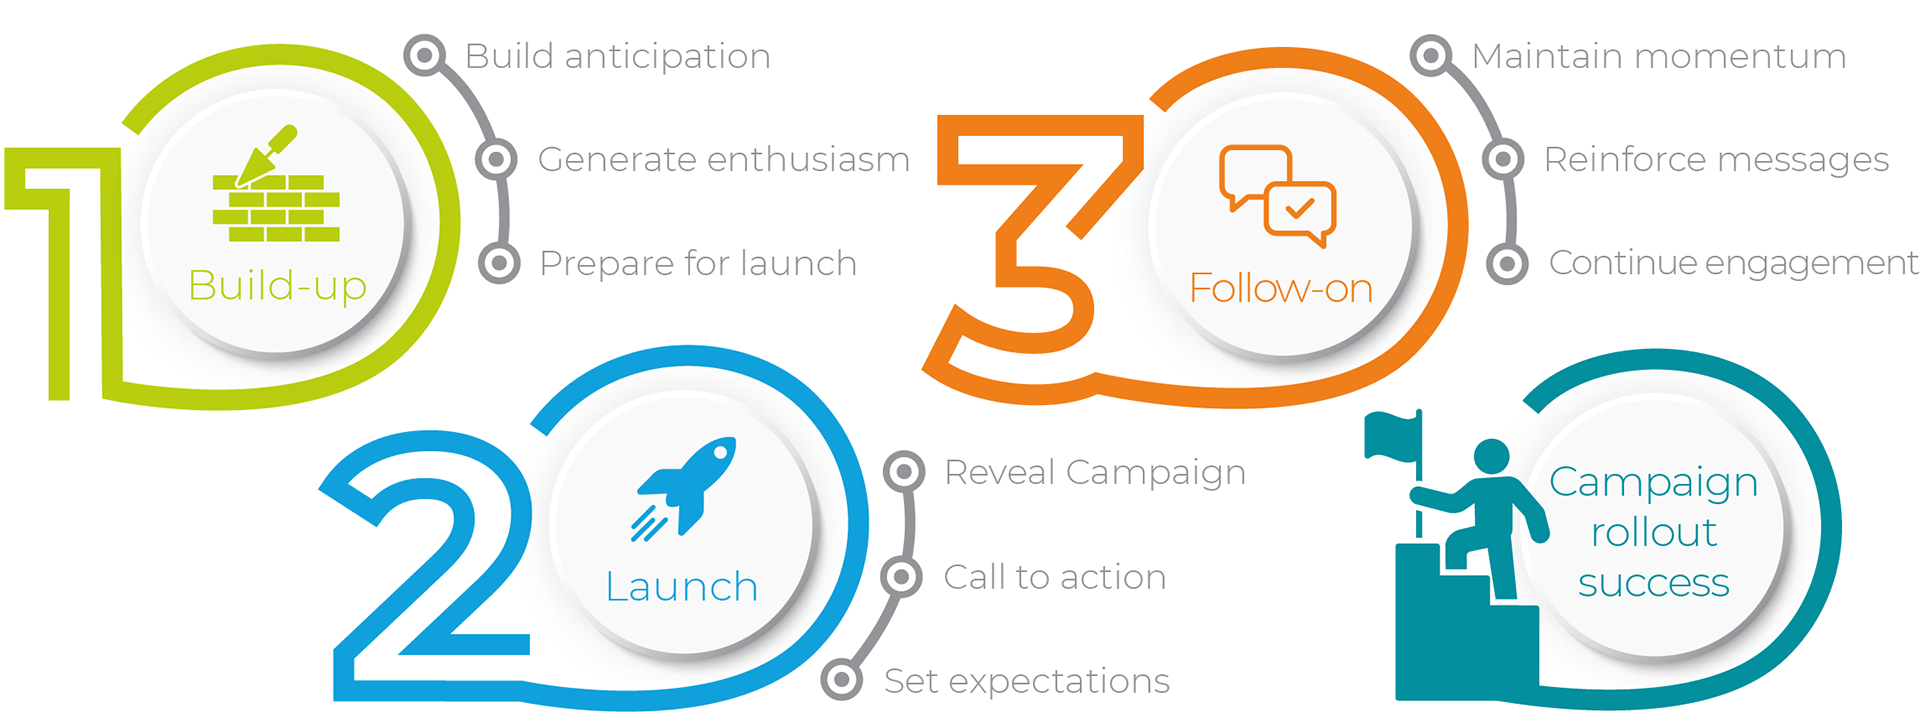 One. Build-up. Build anticipation. Generate enthusiasm. Prepare for launch. Two. Launch. Reveal Campaign. Call to action. Set expectations. Three. Follow-on. Maintain momentum. Reinforce messages. Continue engagement. Campaign rollout success